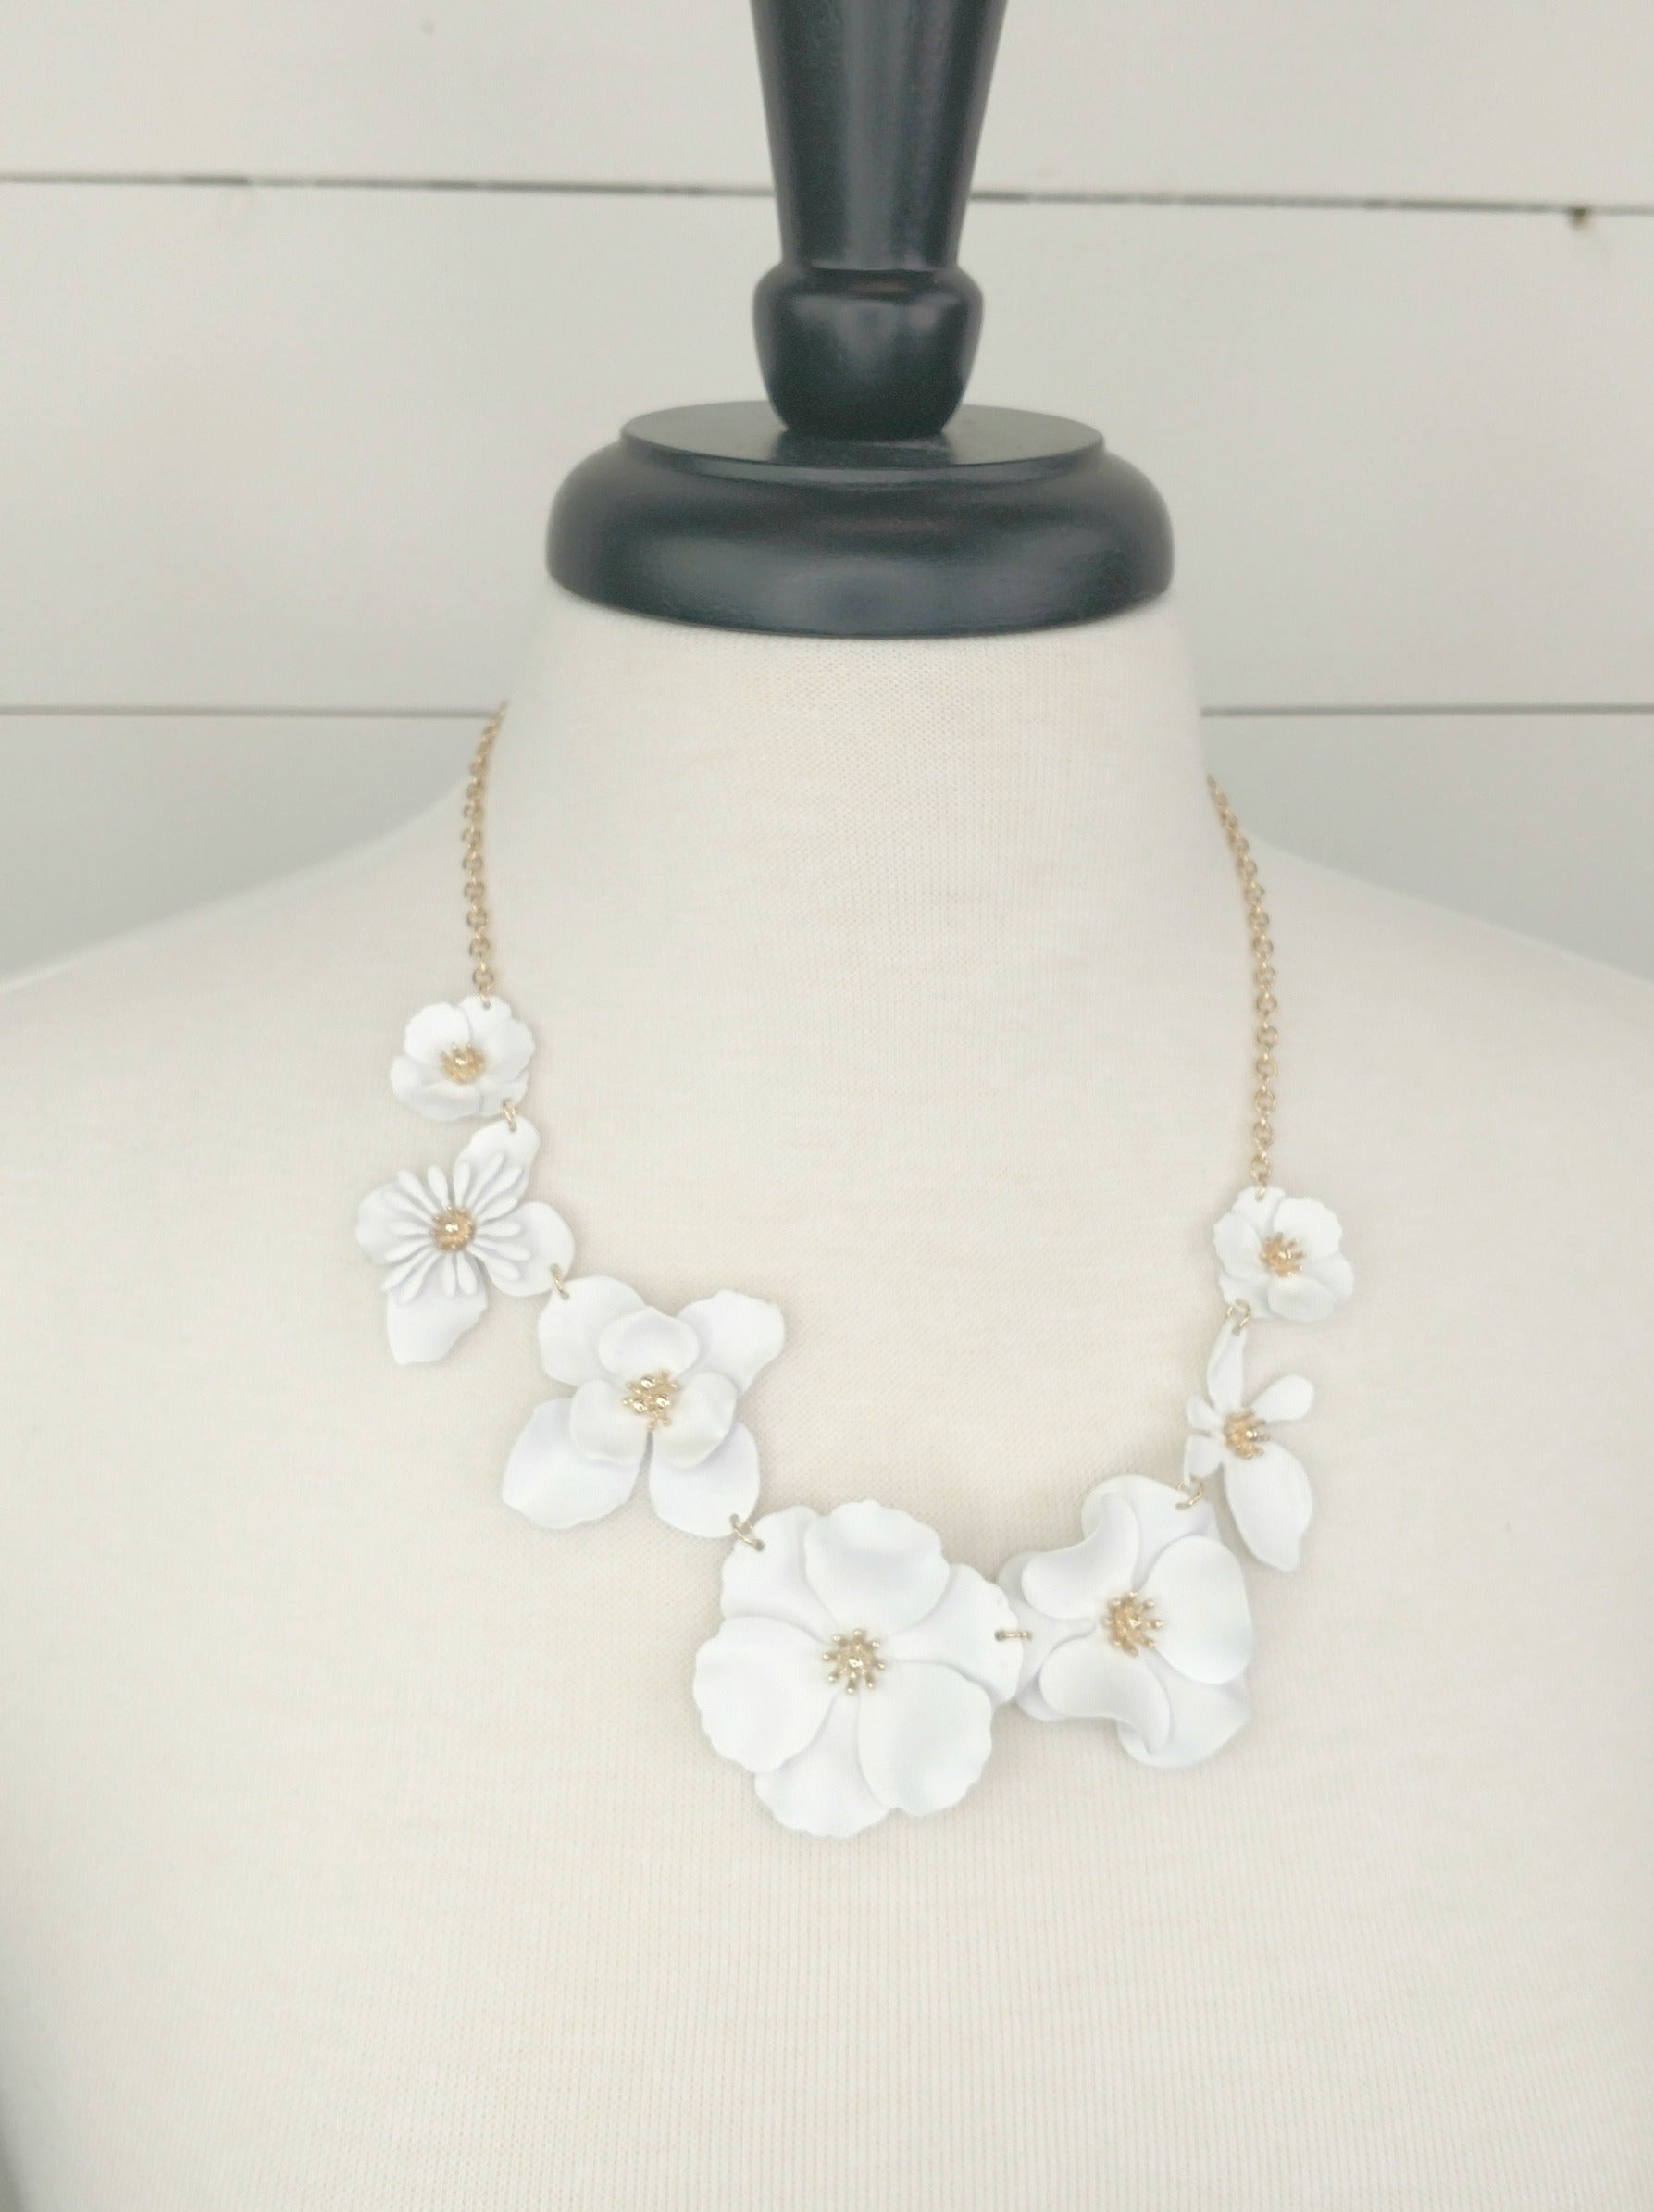 White Blossom Necklace